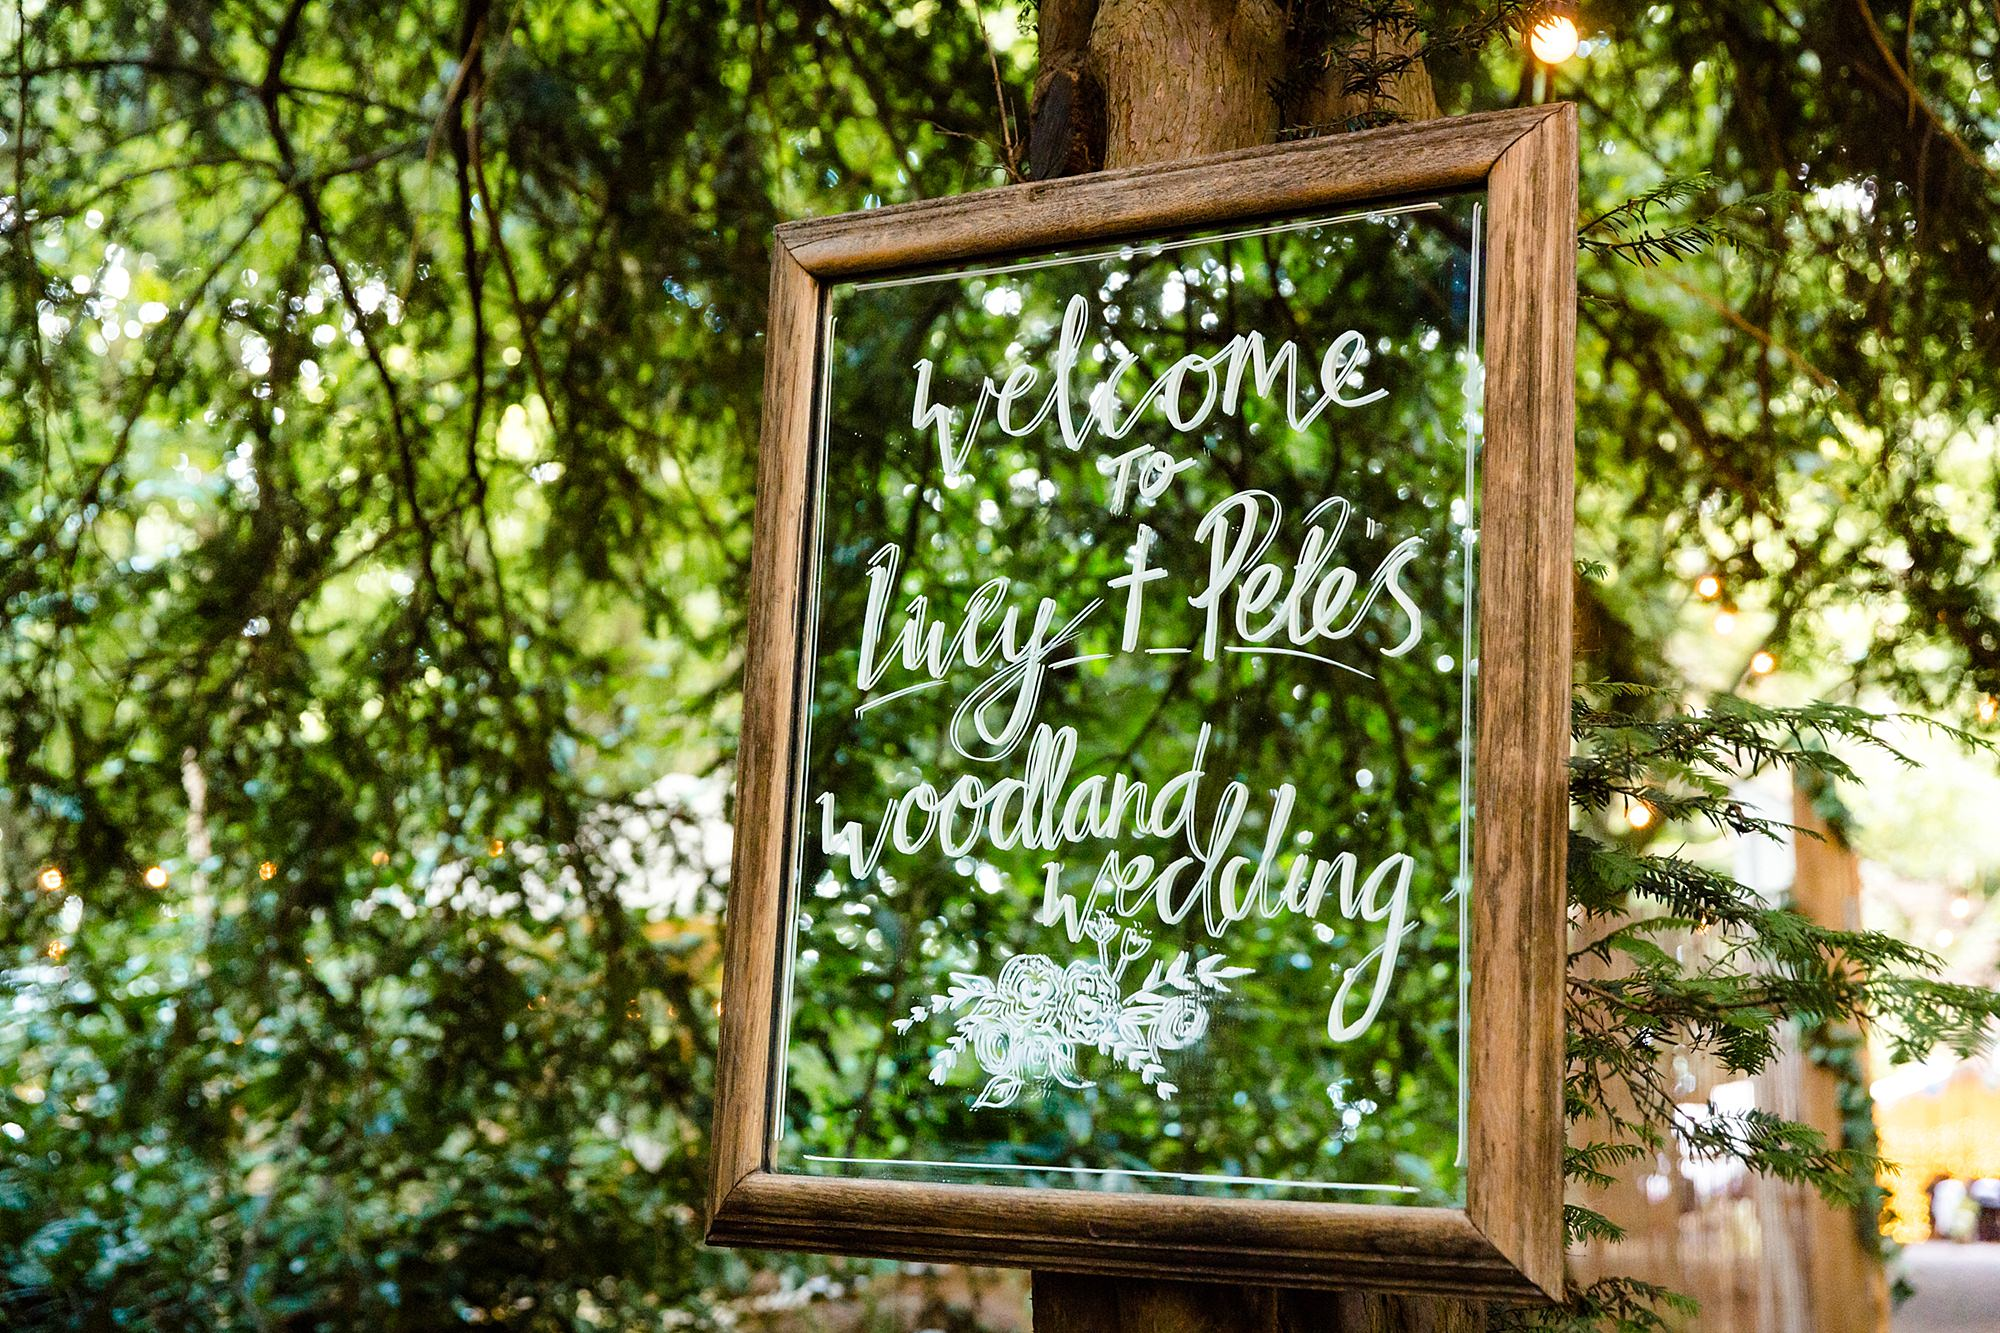 Woodland Weddings Tring wedding welcome sign